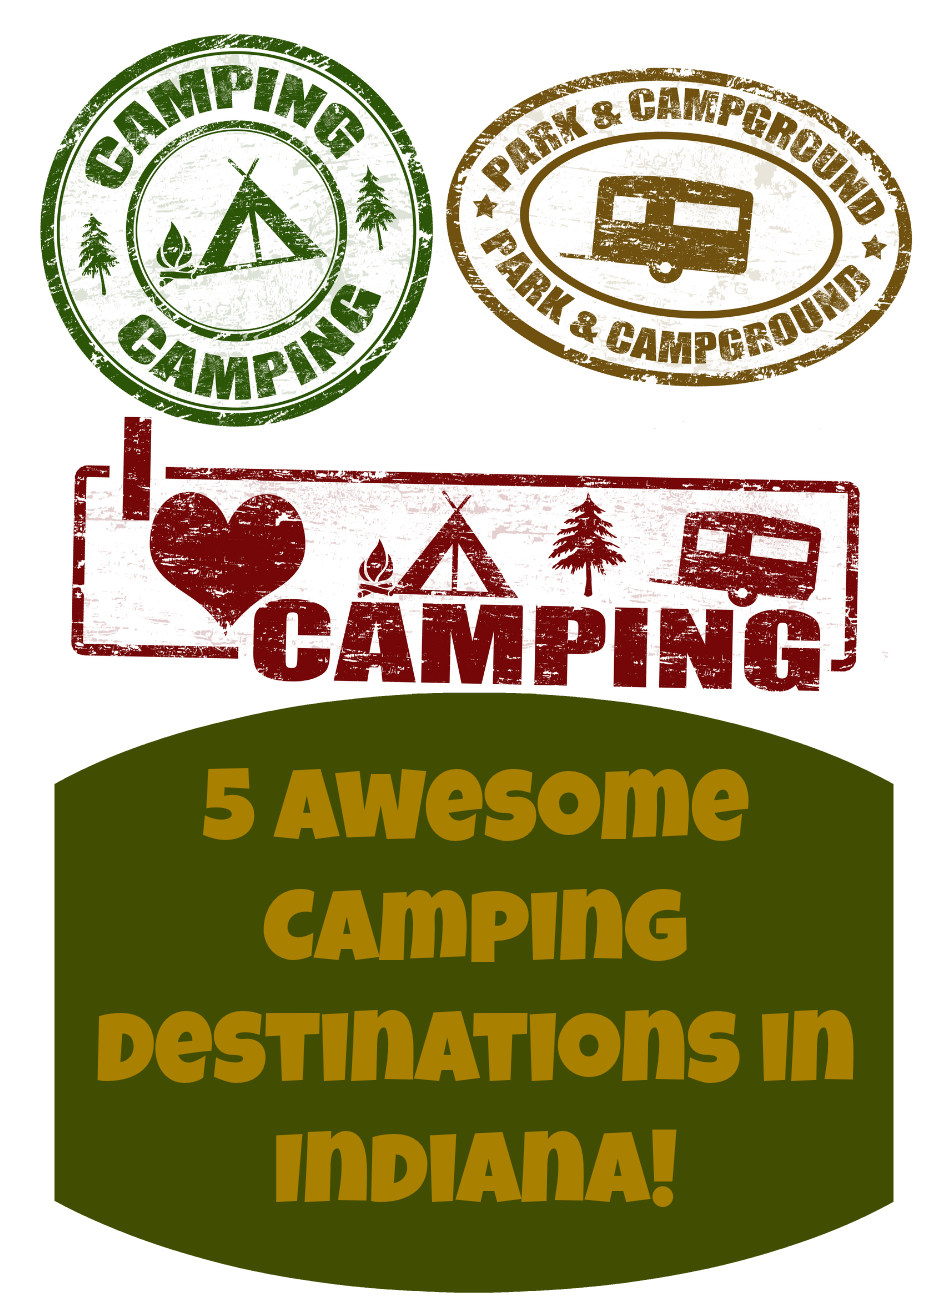 Camping In Indiana: 5 Great Destinations to Check Out!